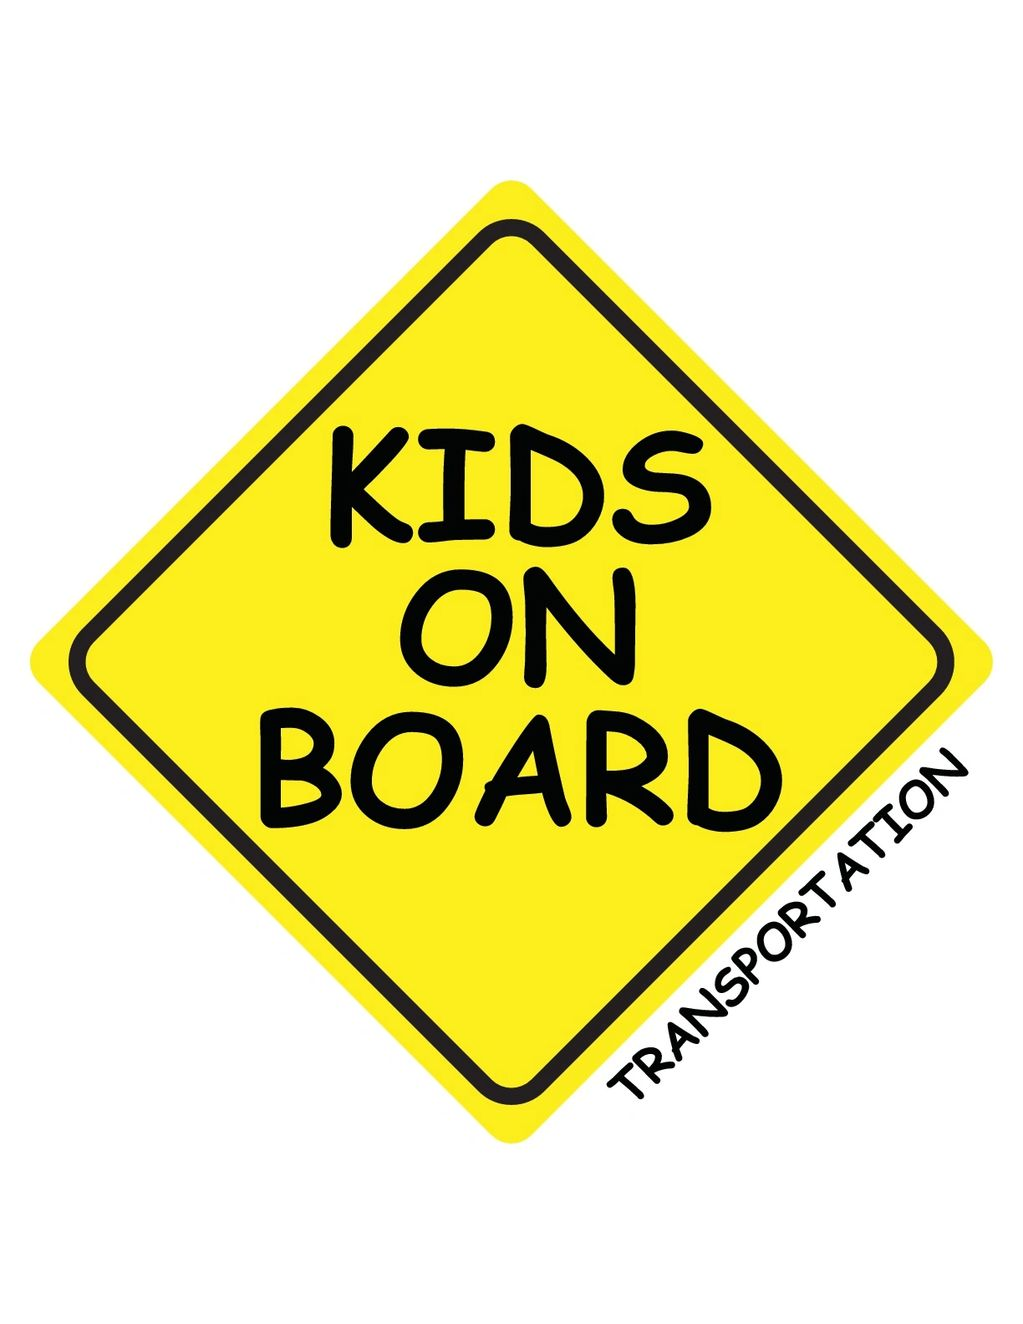 Kids on Board Transportation Motor Coach Charter Services.